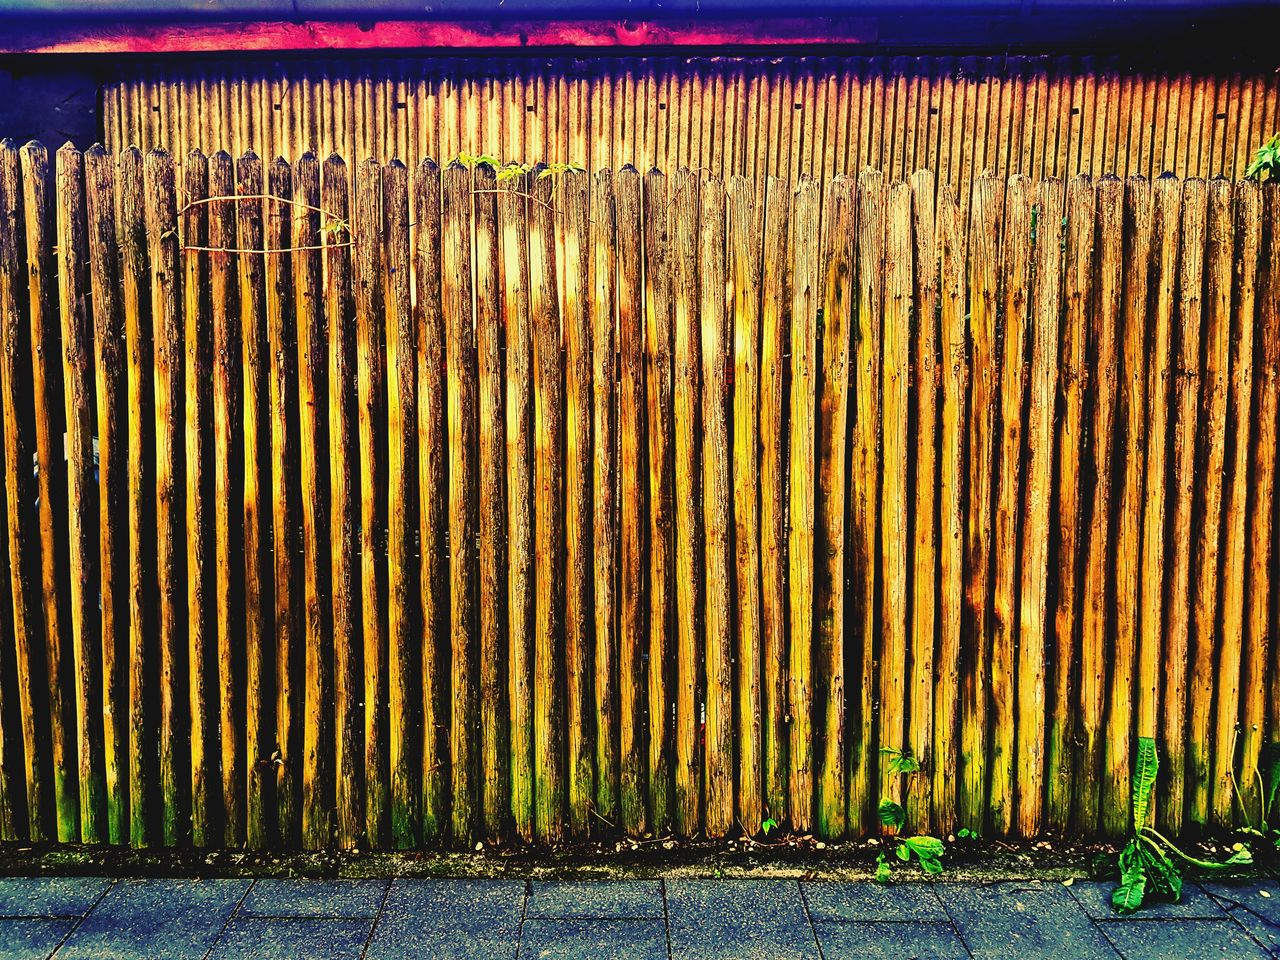 outdoors, day, growth, no people, nature, plant, architecture, corrugated iron, sky